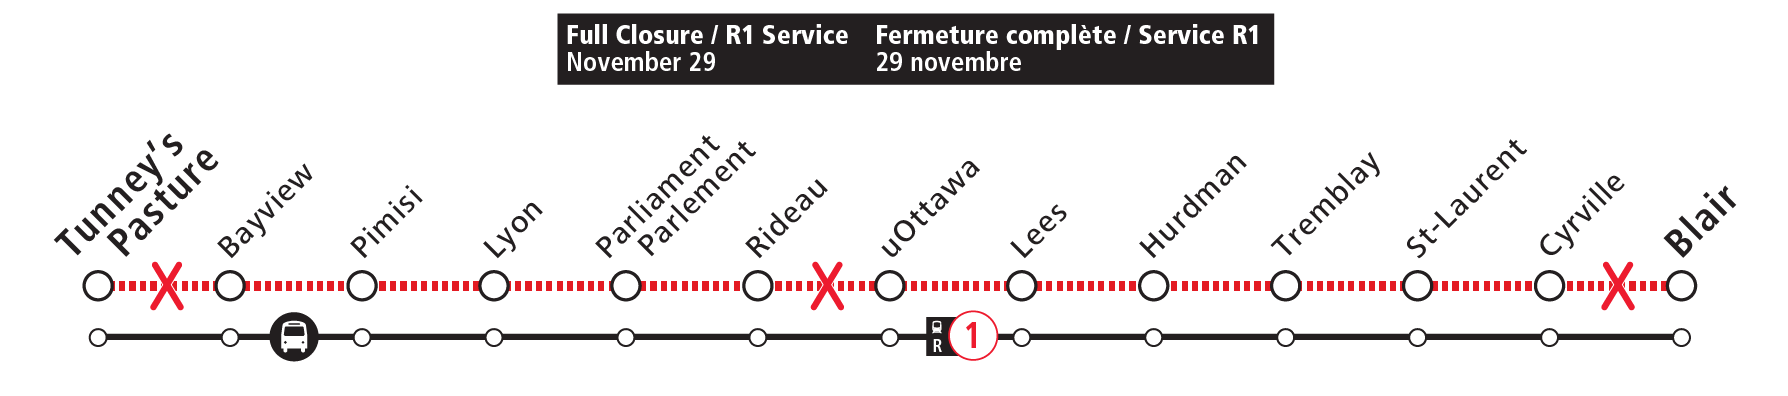 Map of Line 1 showing a full closure on November 22.